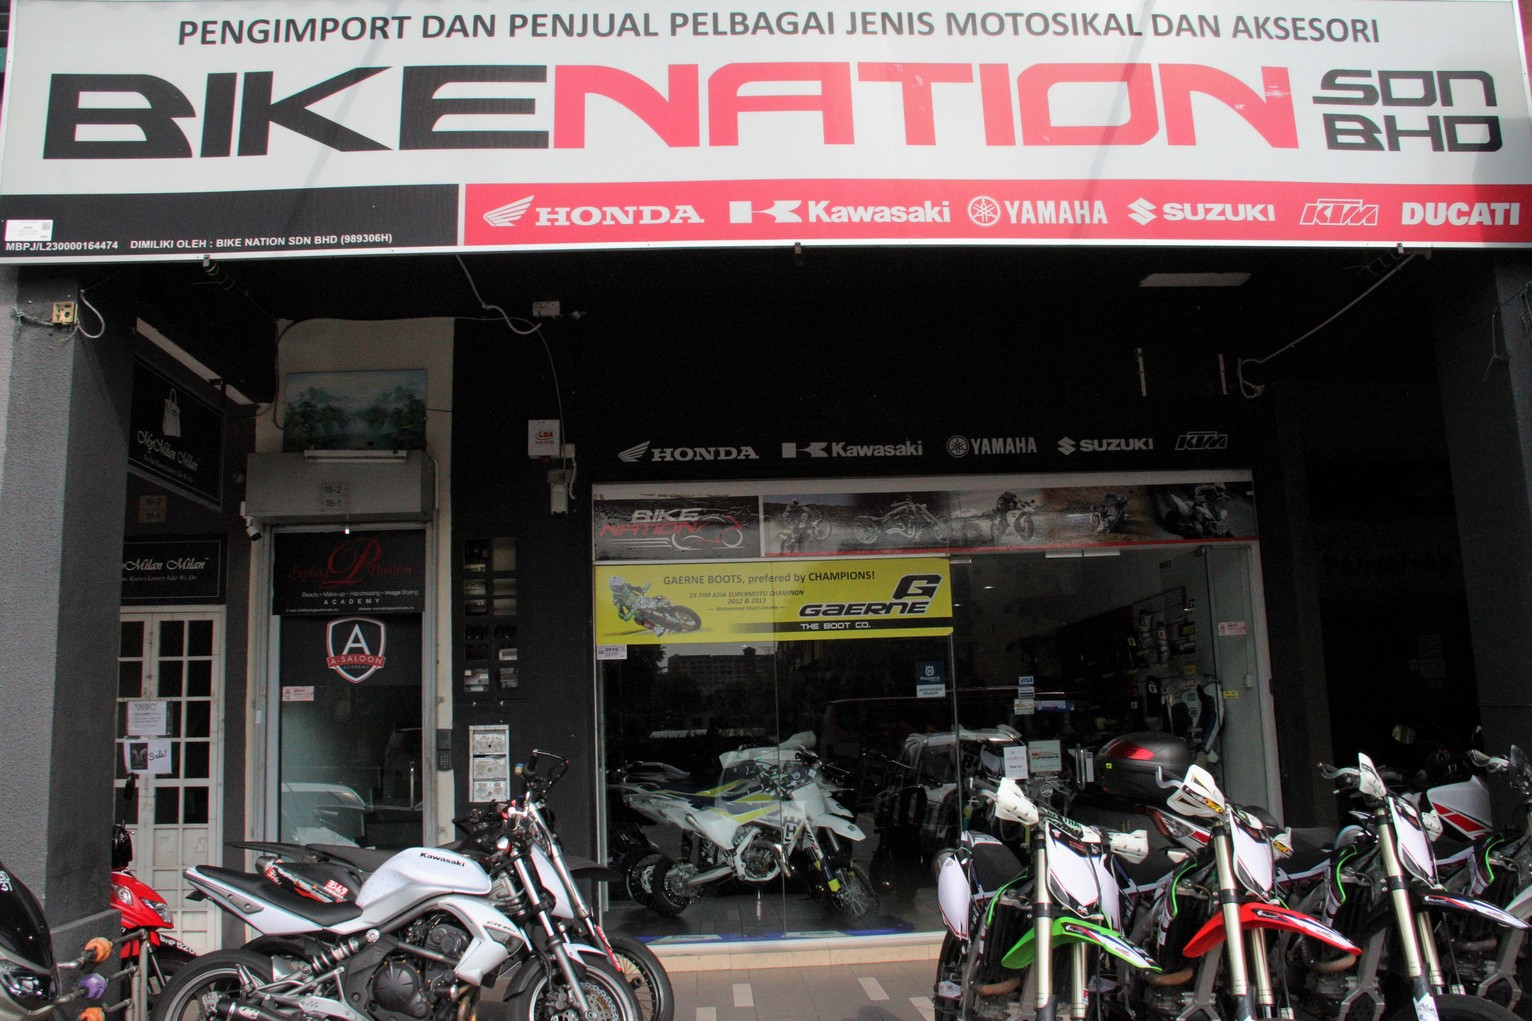 Bike Nation is the new official Husqvarna dealer in Malaysia